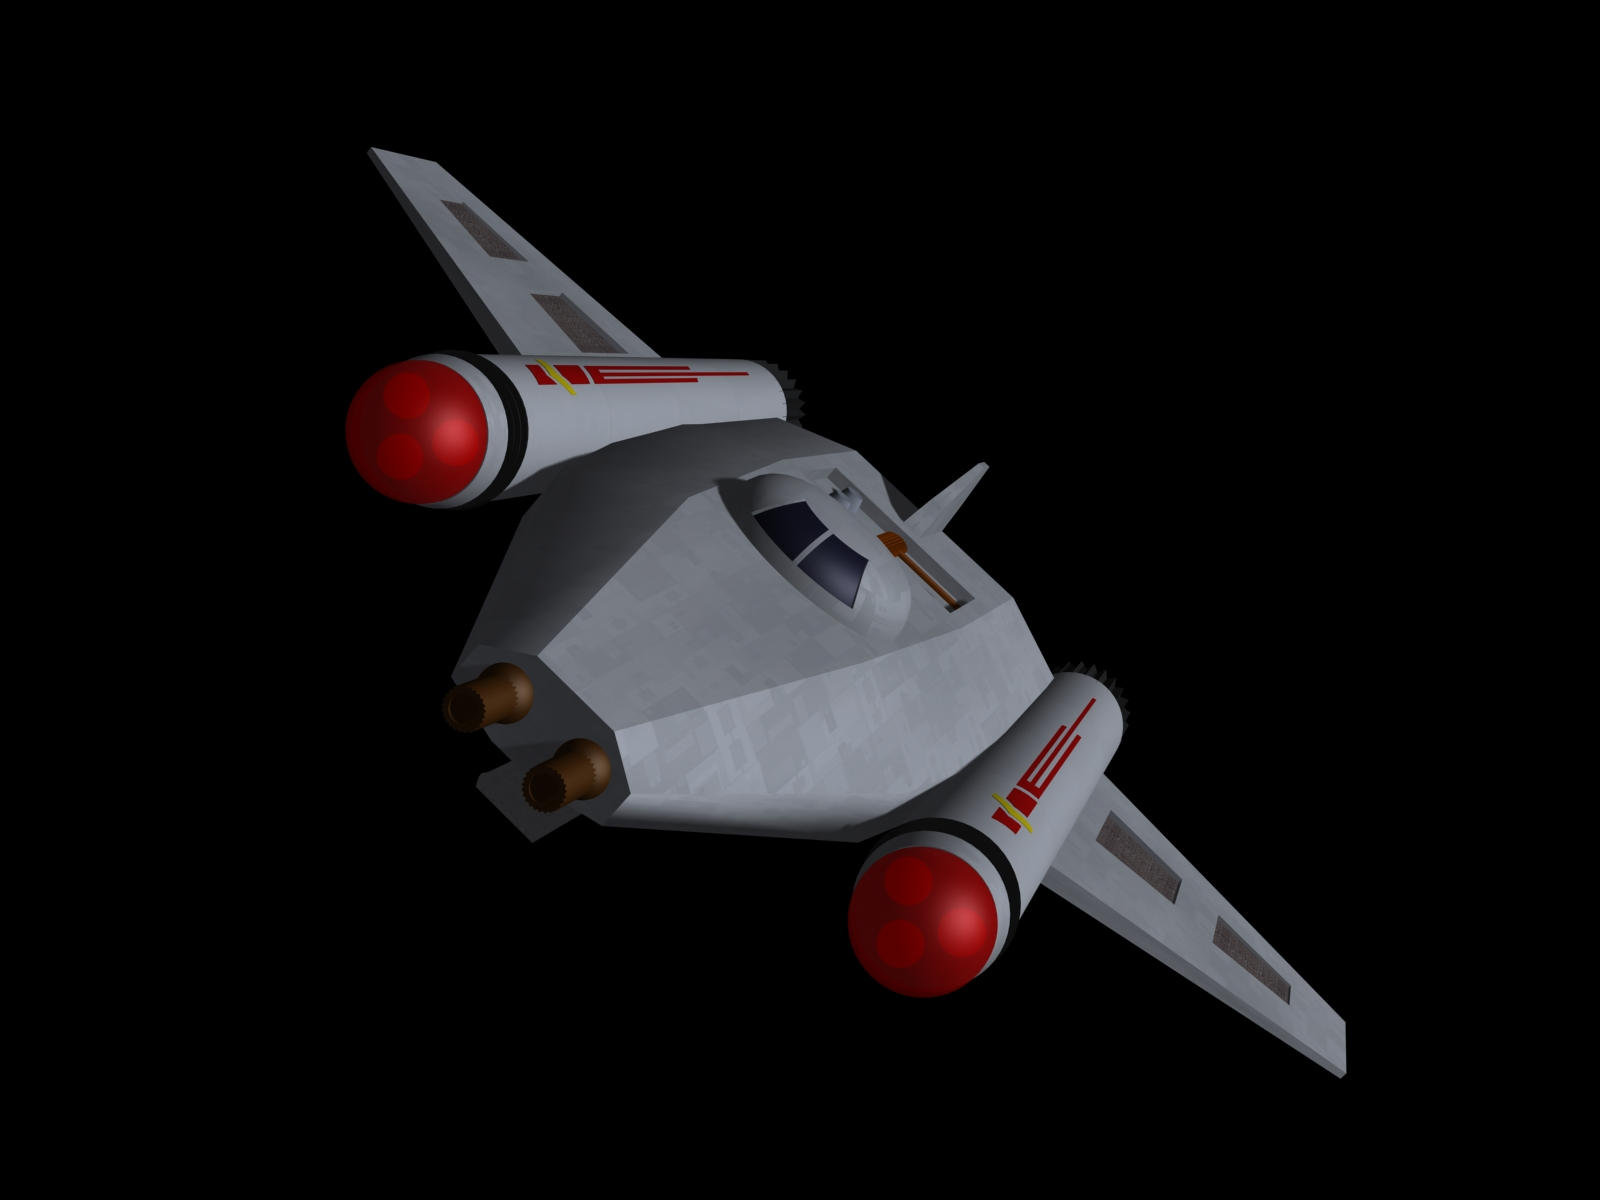 TOS tactical fighter by davemetlesits